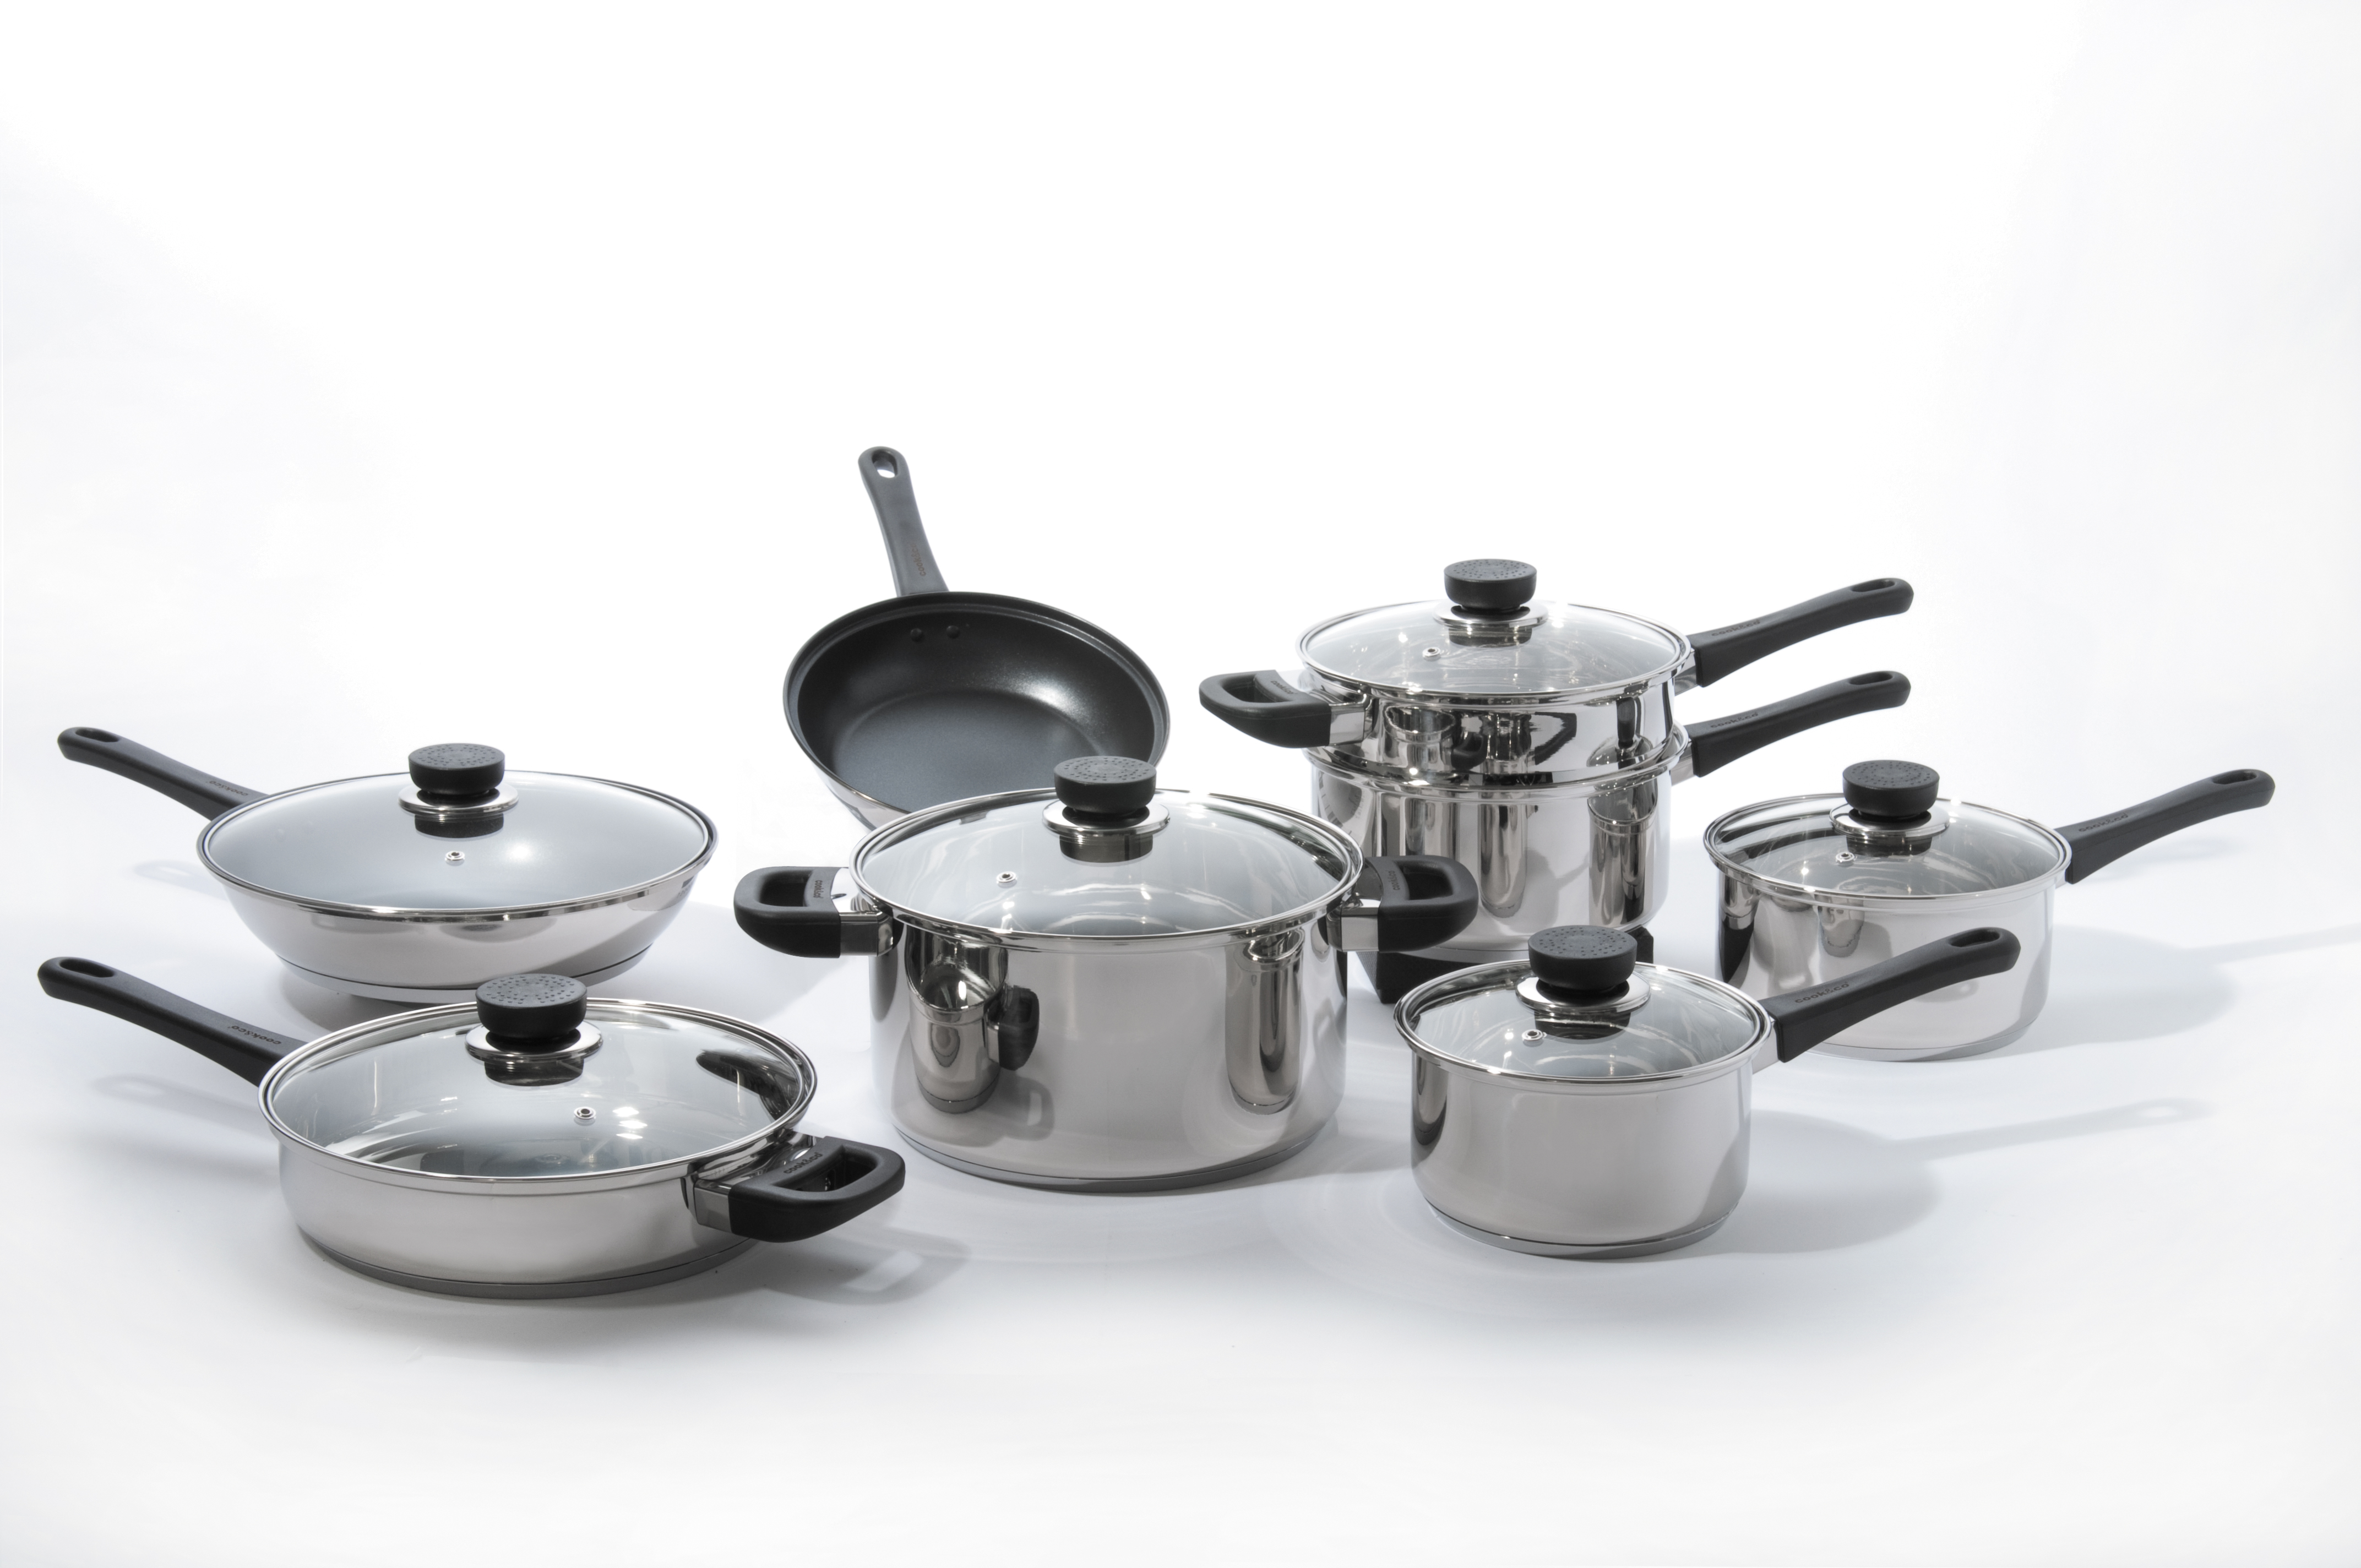 BergHOFF CooknCo 14 pc Cookware Set